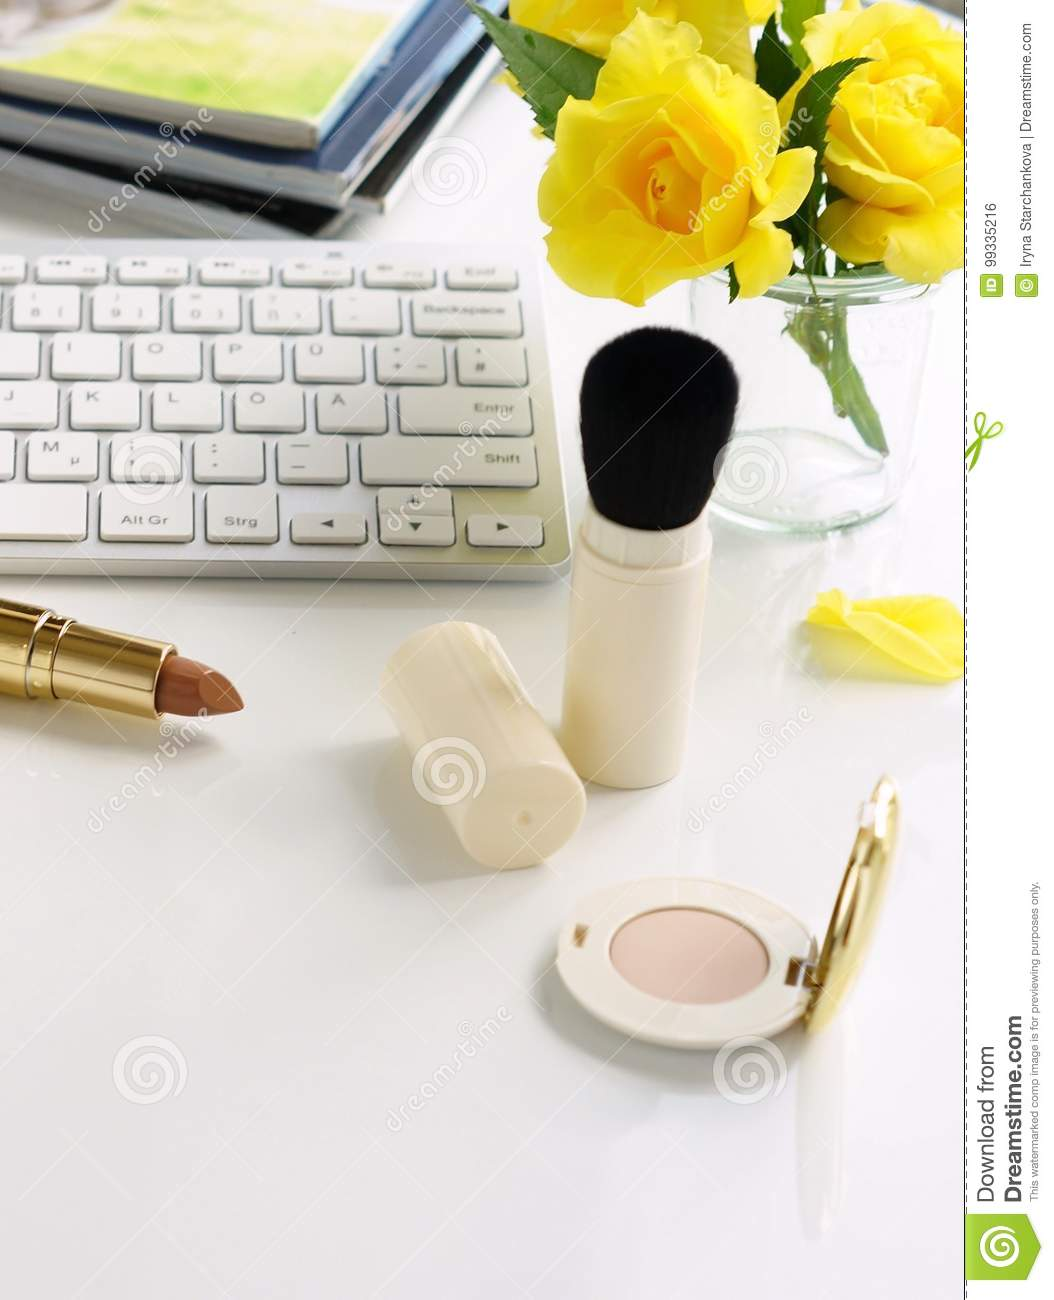 Beauty blog concept. Female make up accessories and roses